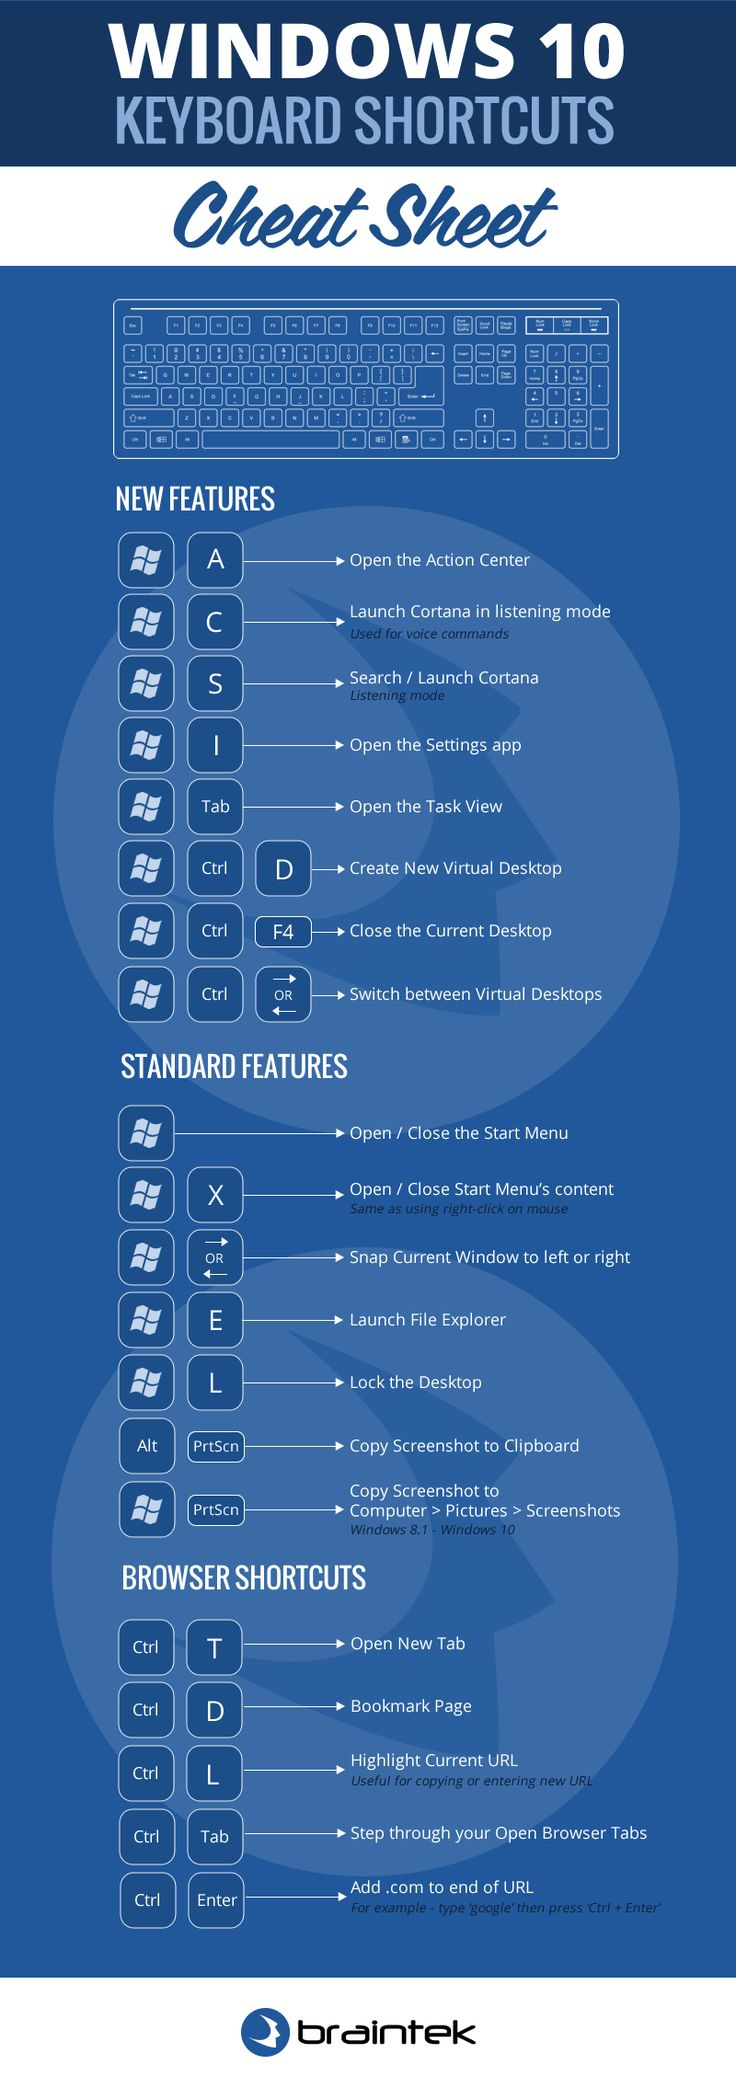 https://www.braintek.com/wp-content/uploads/2015/09/windows-10-keyboard-shortcuts-png8.png